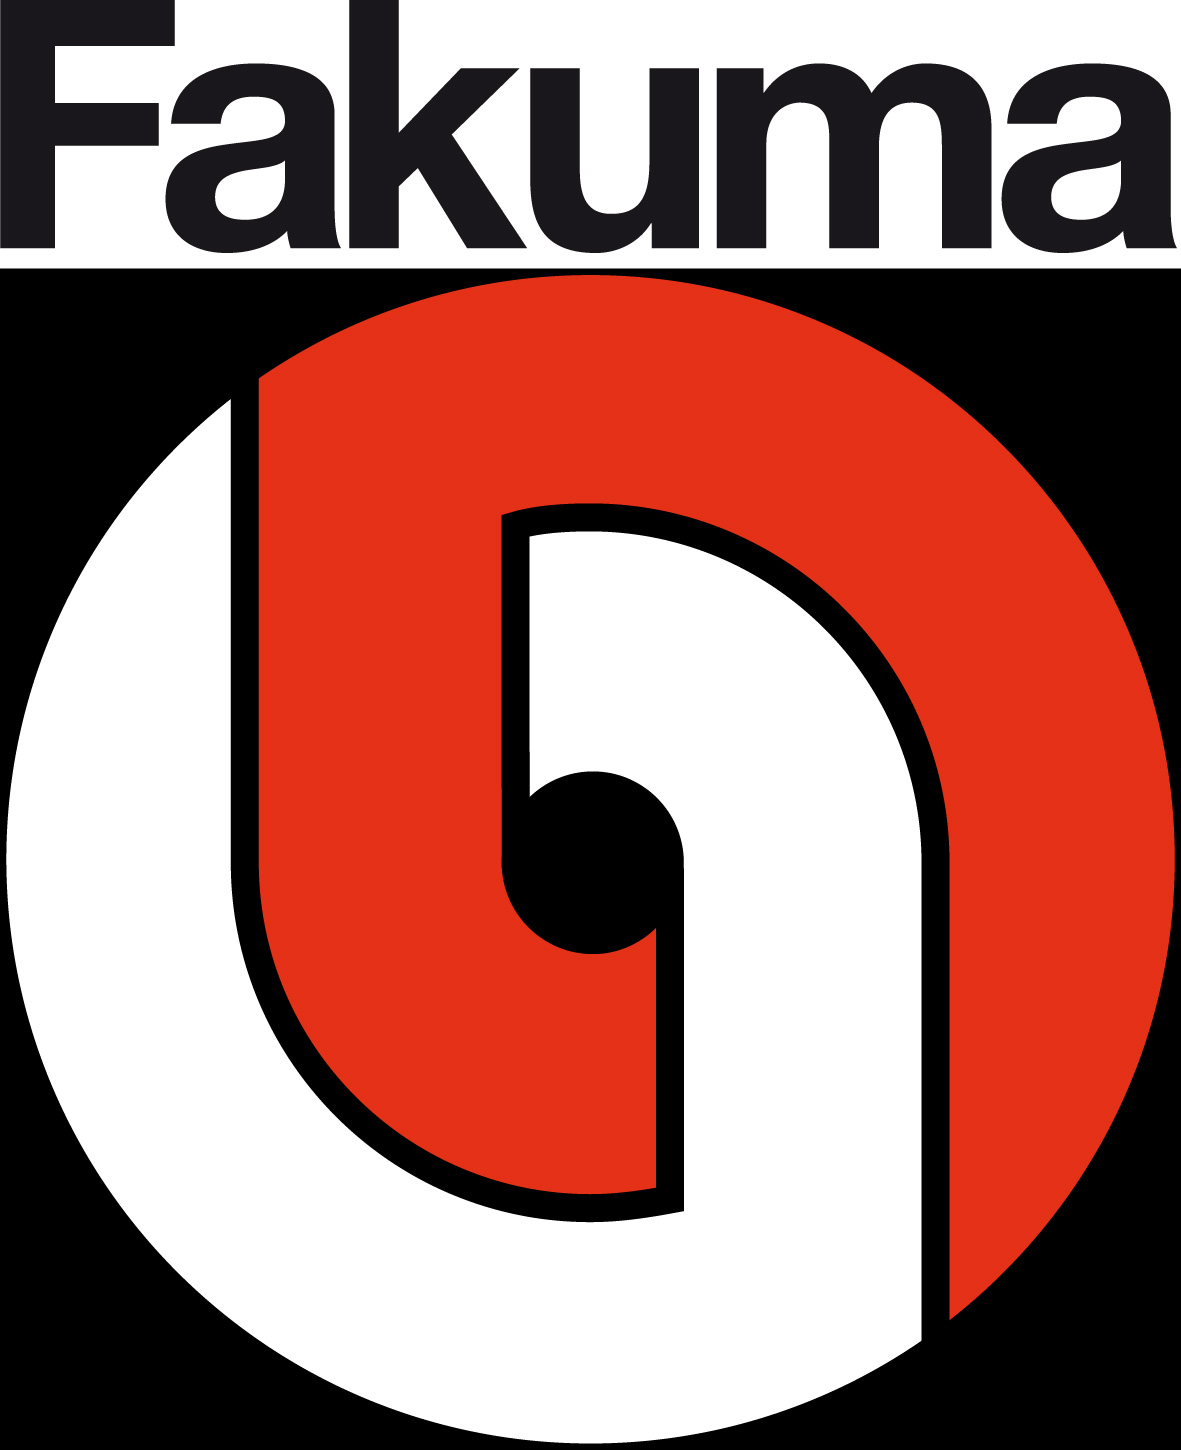 We are exhibiting at Fakuma 2017